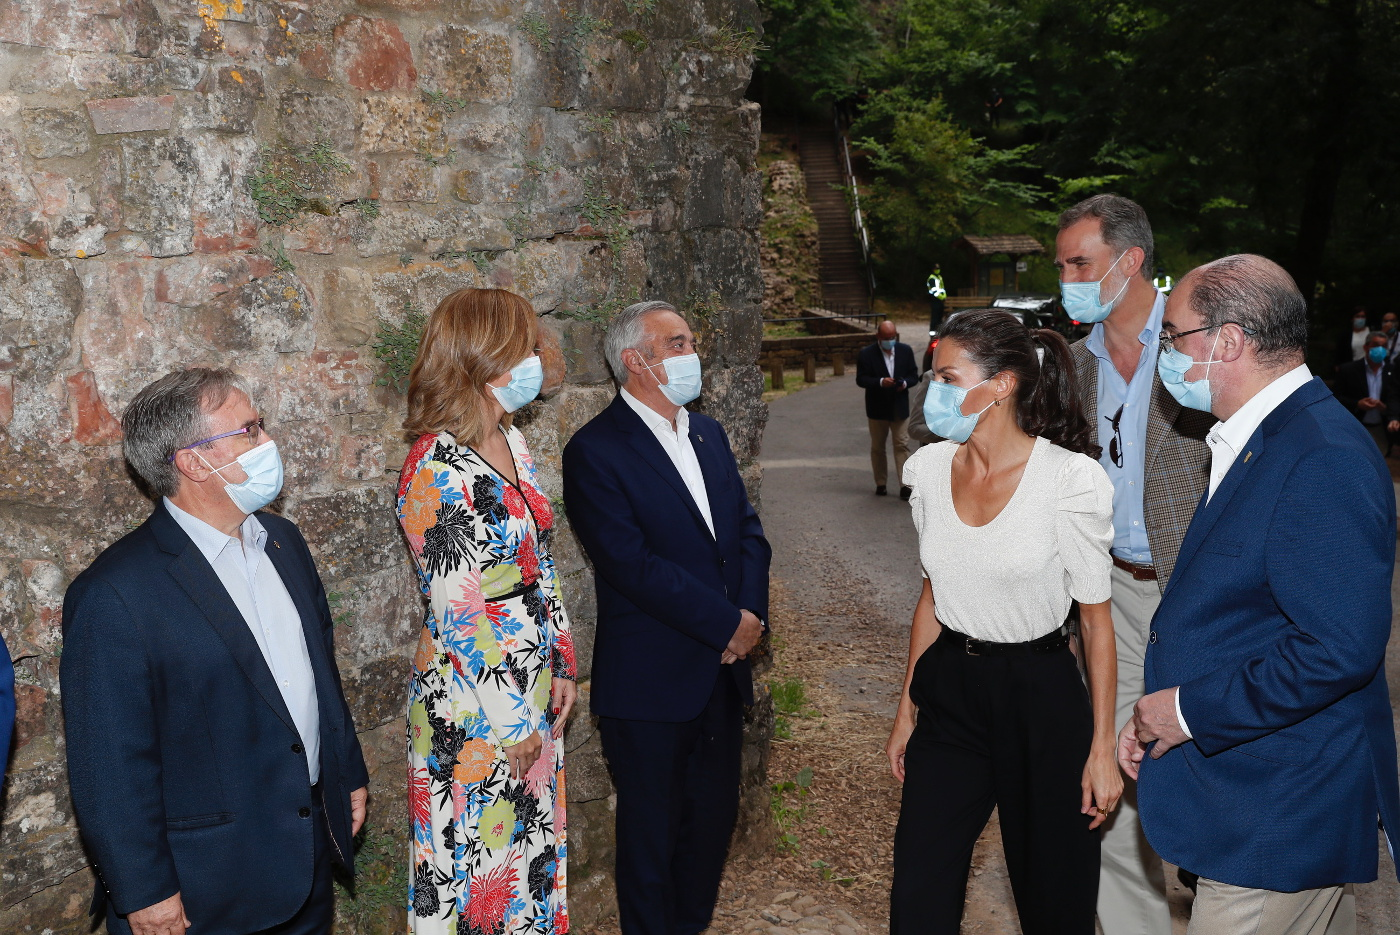 King Felipe and Queen Letizia of Spain visited Pony in Huesca